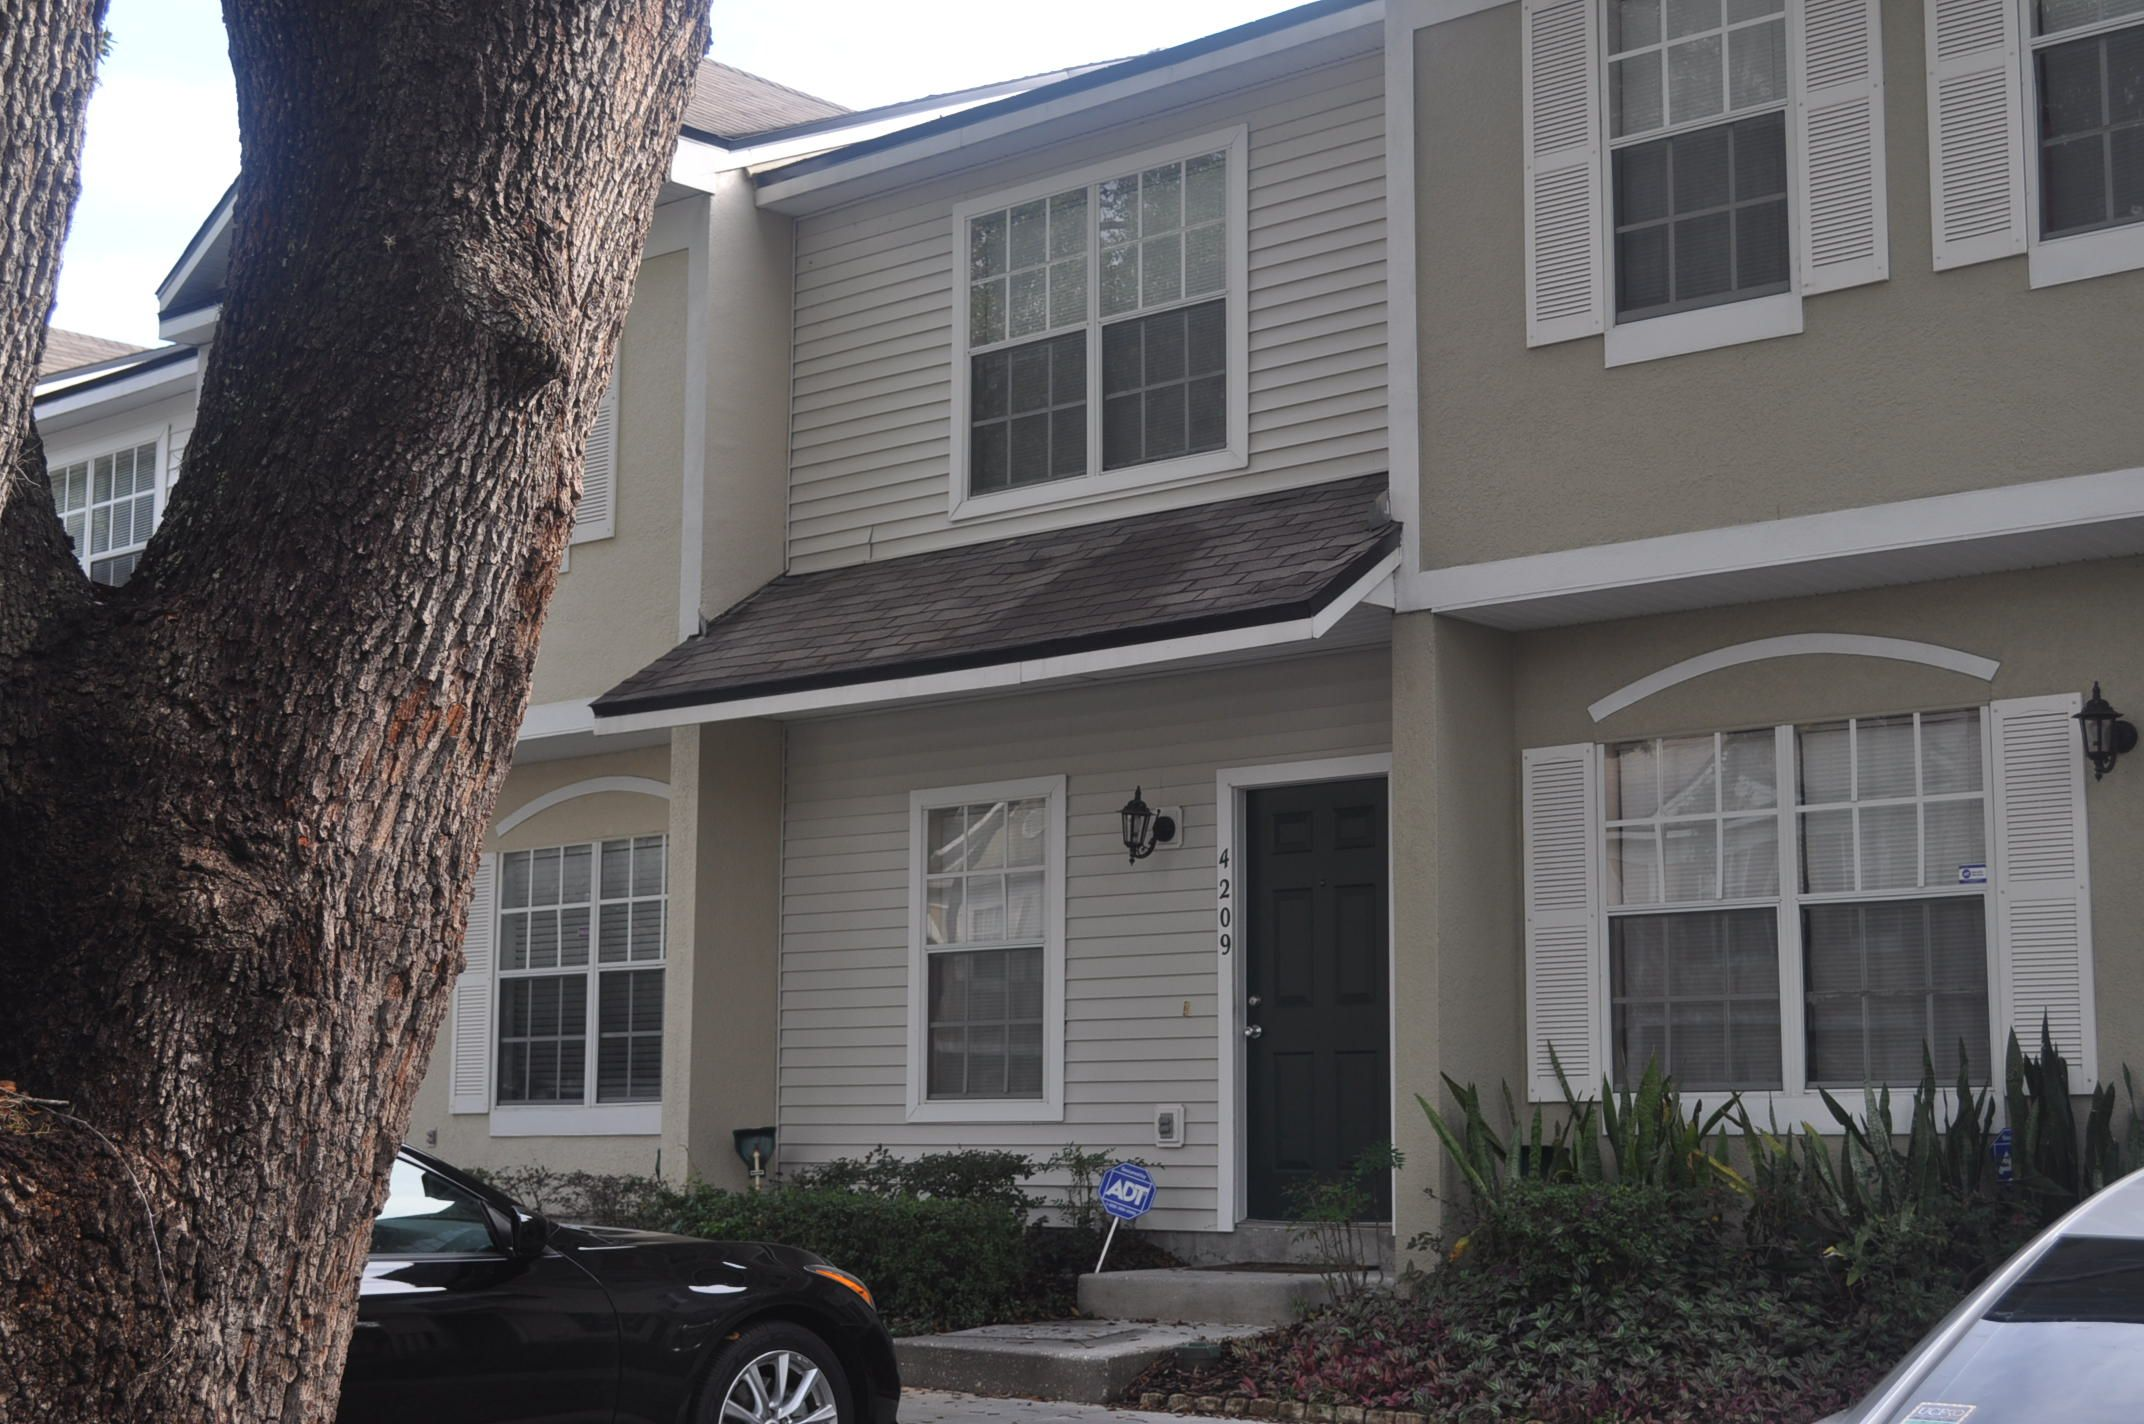 Pin on Central Florida Homes For Sale